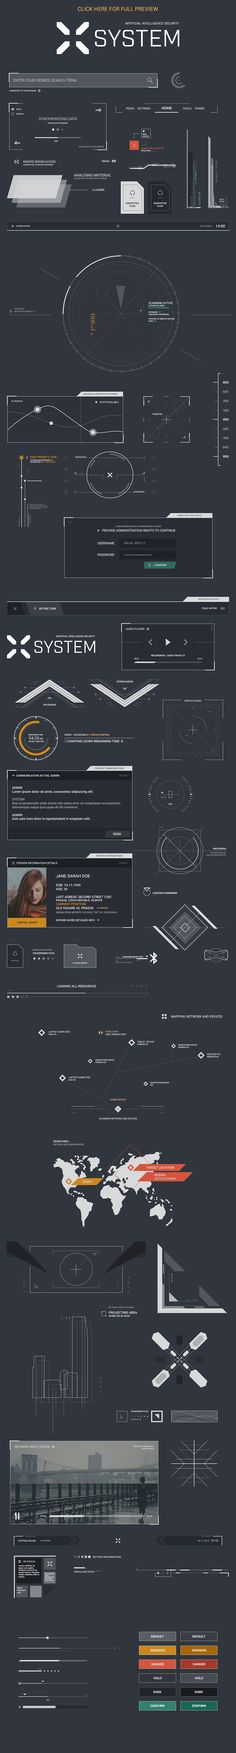 System UI PSD Template by M K GRAPHICS on @creativemarket